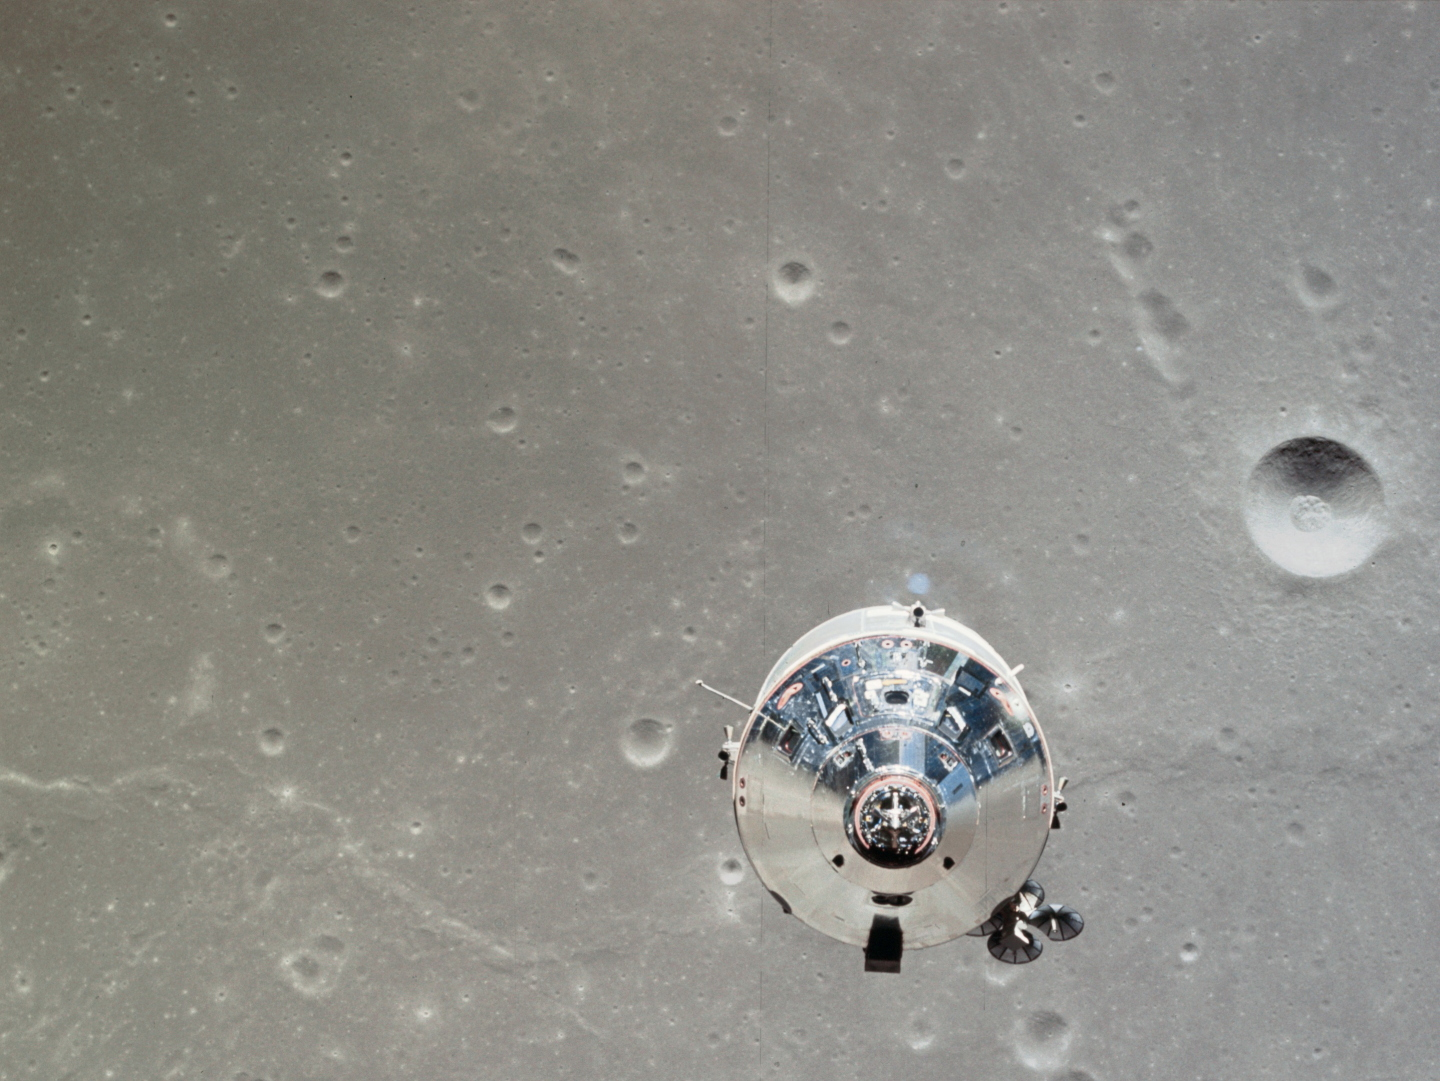 Apollo and moon surface